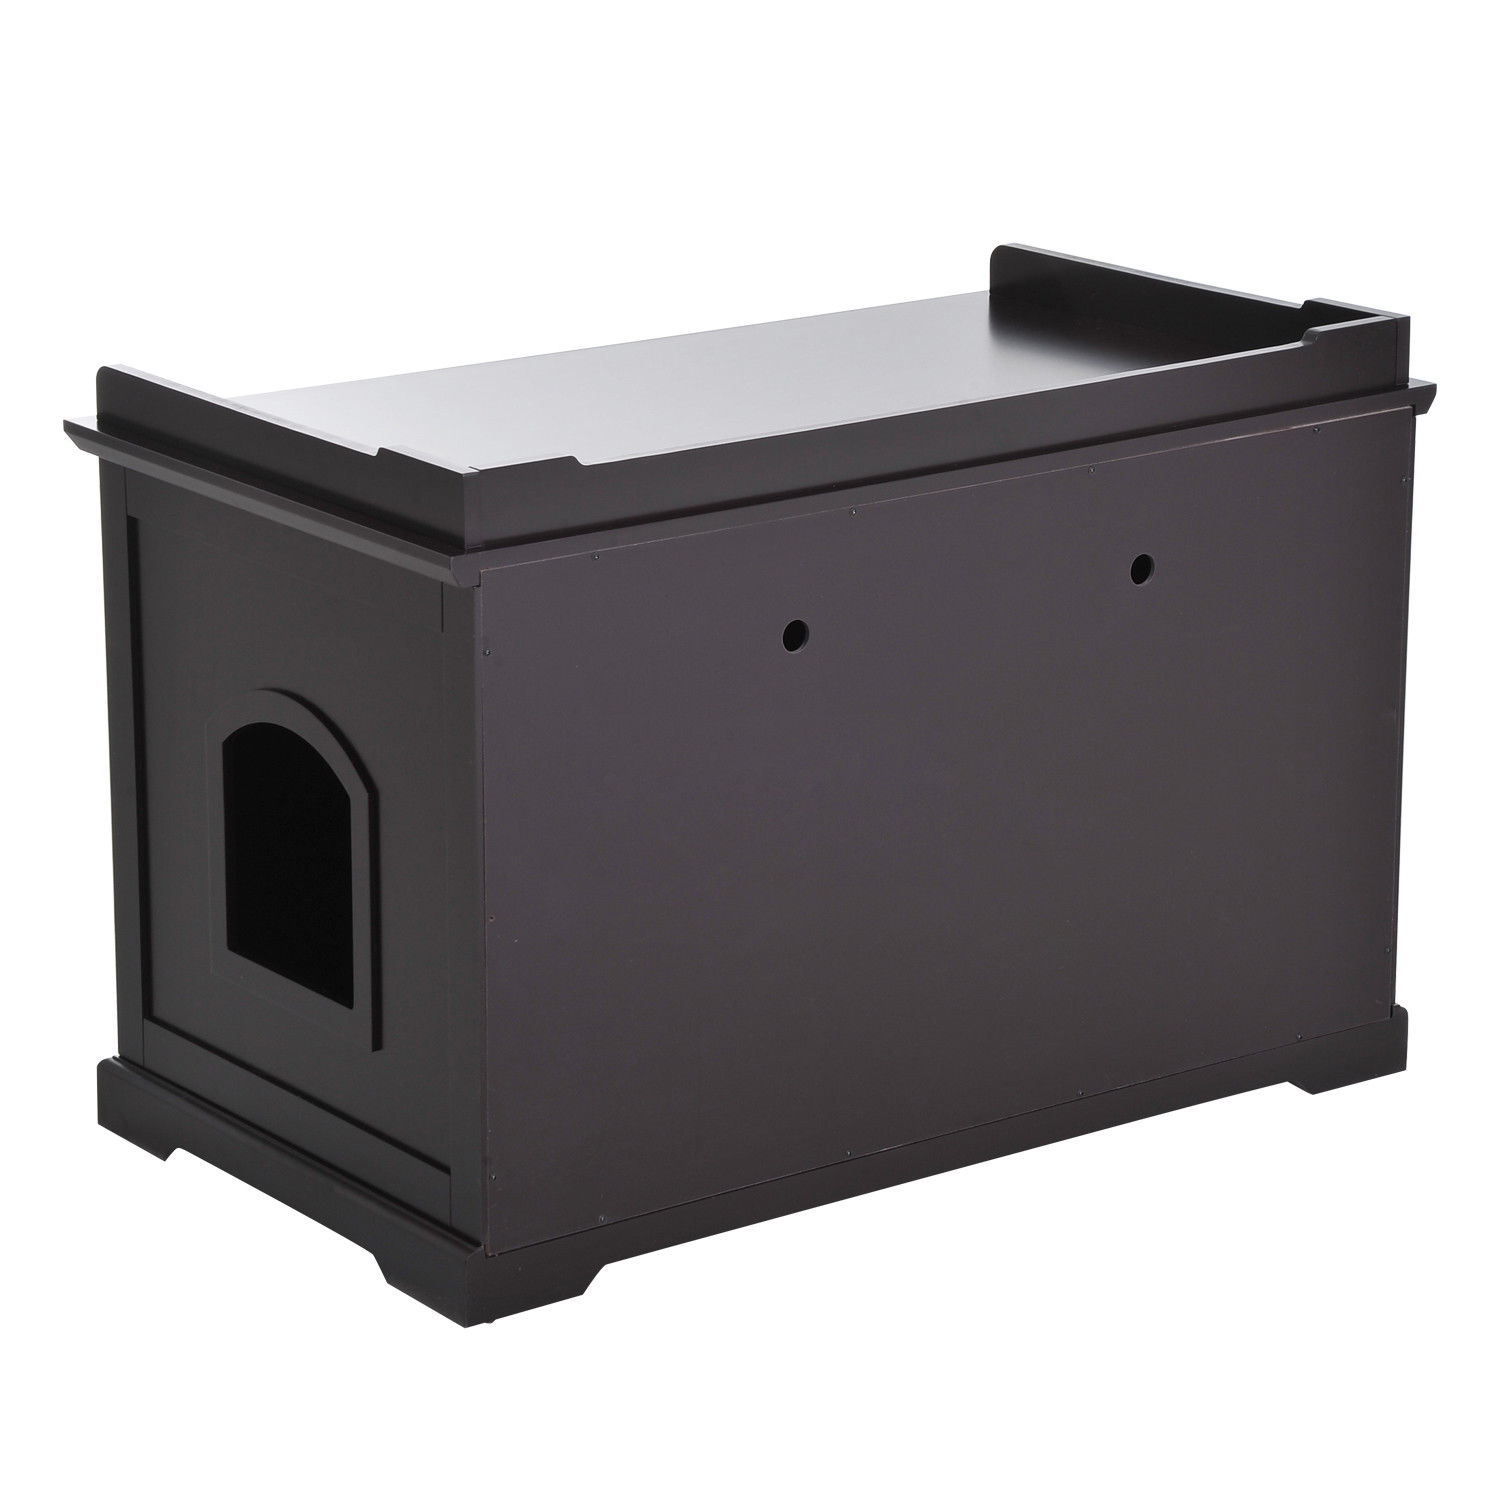 hidden kitty litter box bench enclosure hall end table cat. Black Bedroom Furniture Sets. Home Design Ideas